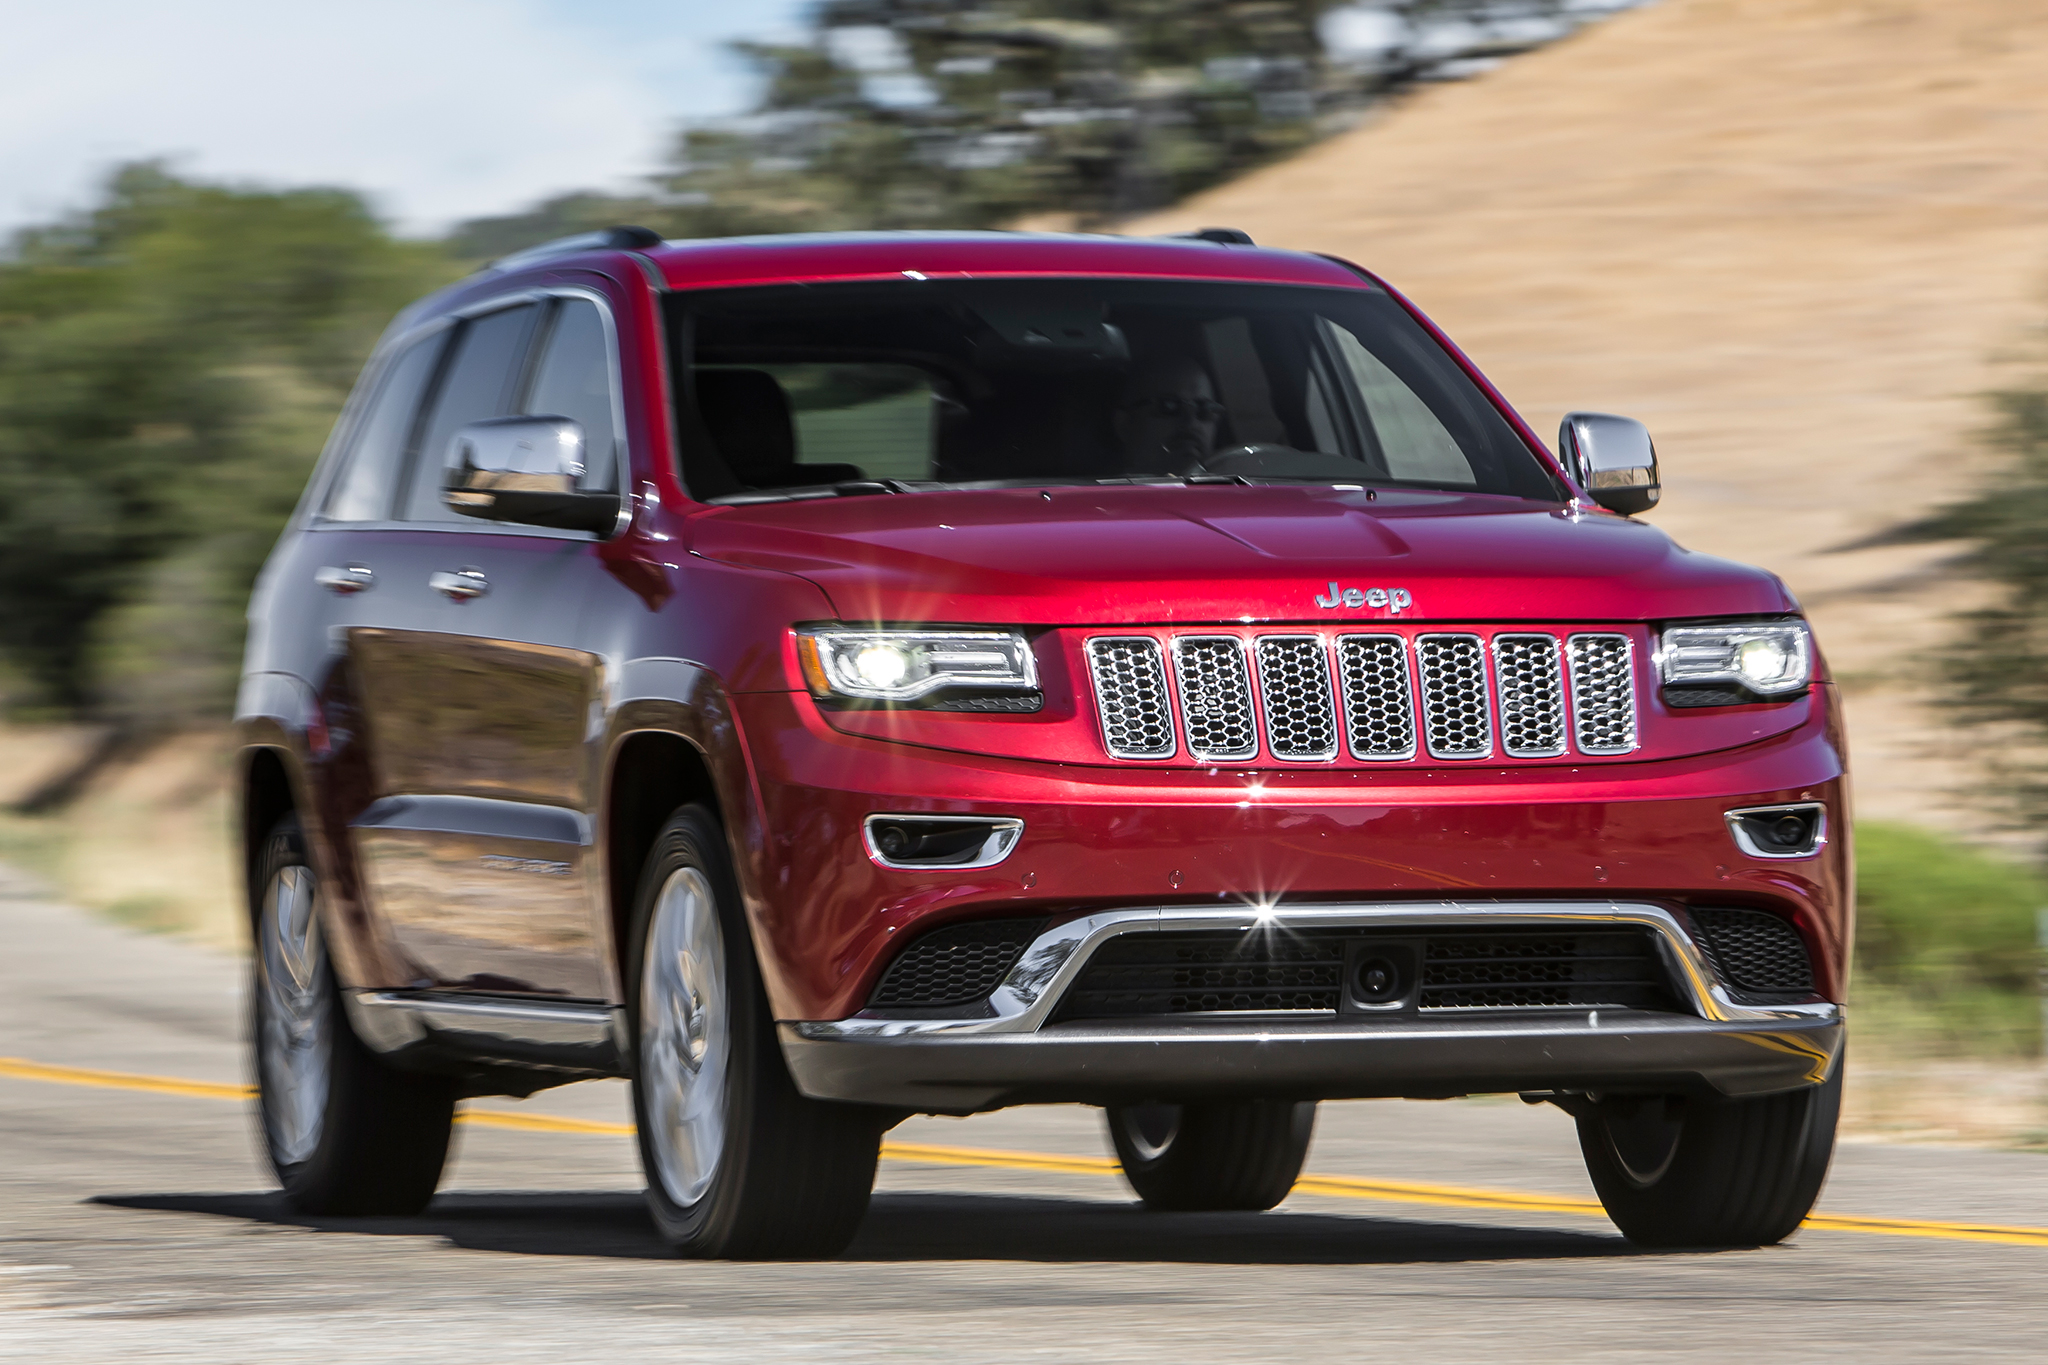 895,000 Jeep Grand Cherokee, Dodge Durango SUVs Recalled for Wiring